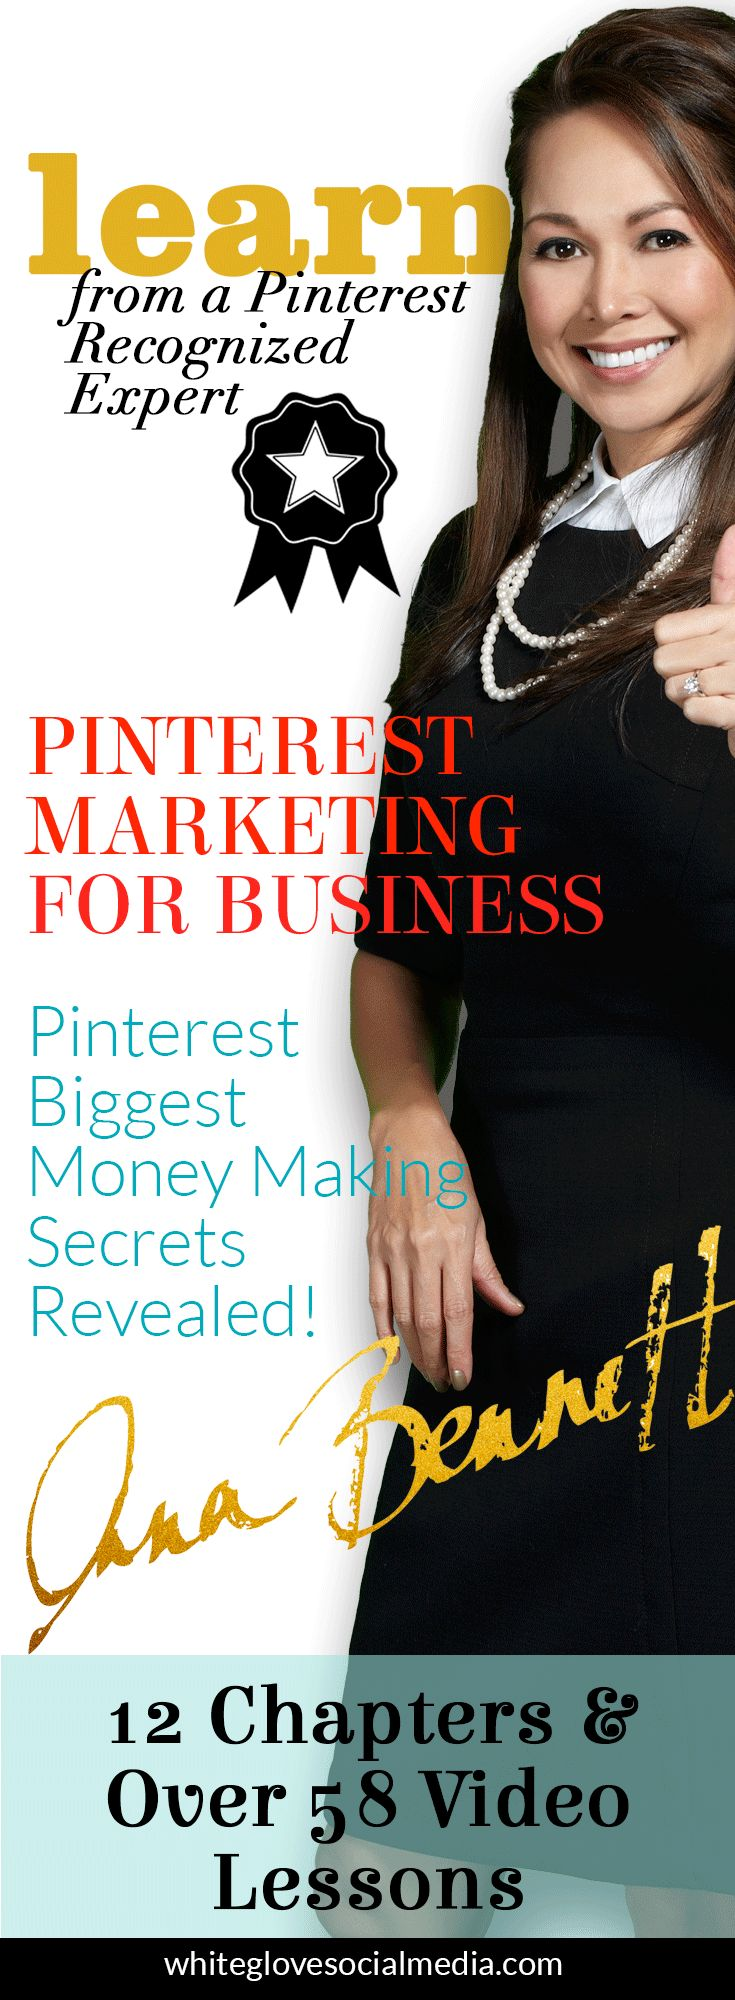 "Pinterest marketing expert Anna Bennett says ""I've brought all of the best, need-to-know education, tactics, latest & greatest Pinterest insights and more together in one product."" CLICK here to learn more http://www.whiteglovesocialmedia.com/pinterest-marketing-for-business/"